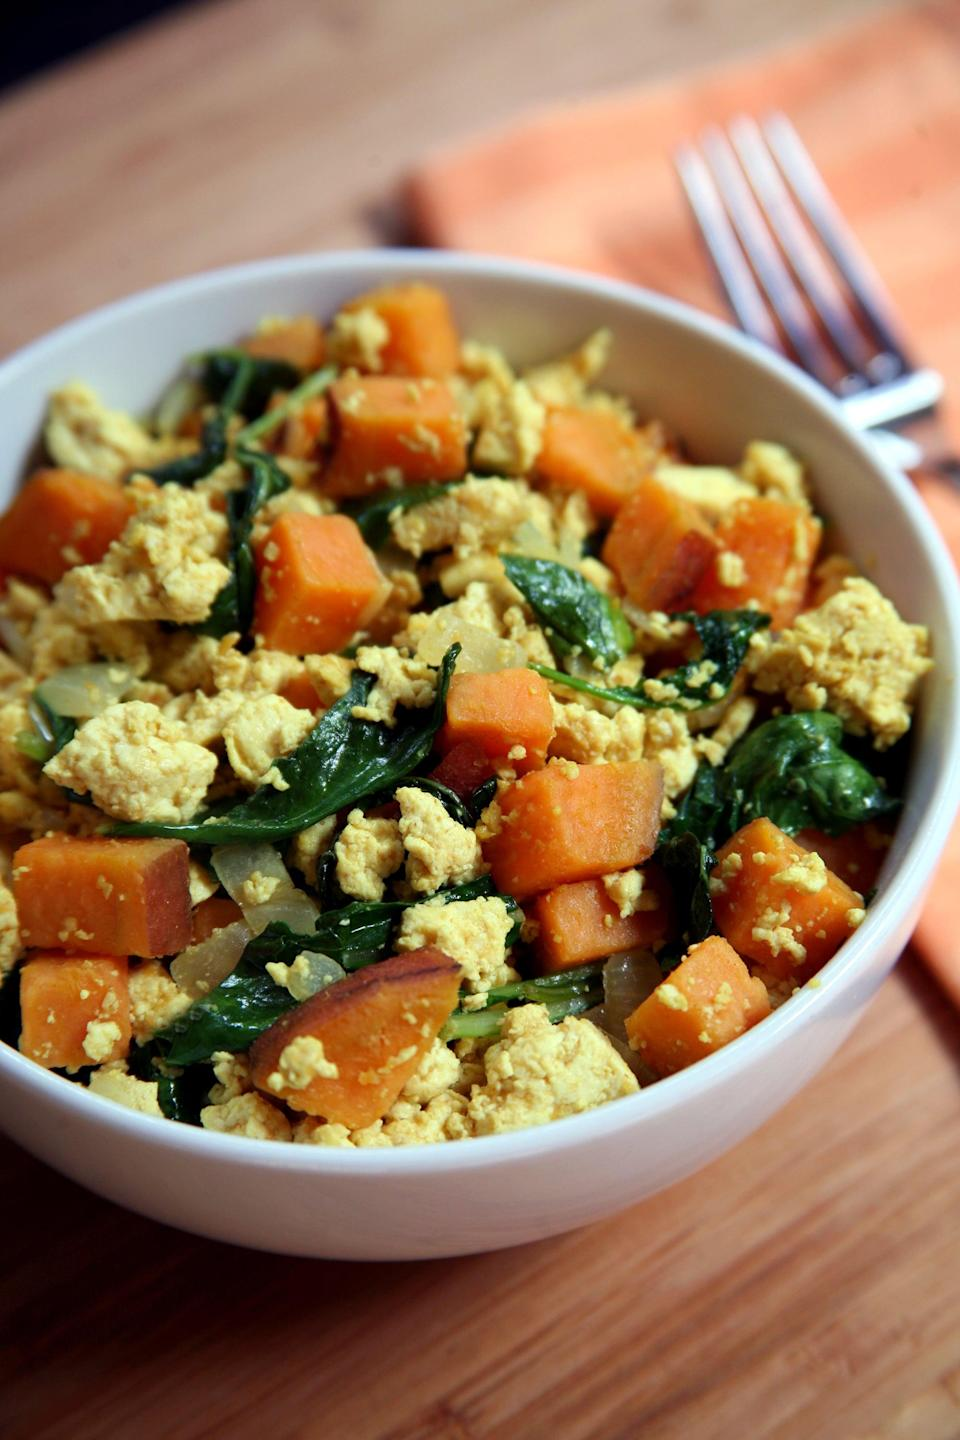 "<p>This tofu scramble is bursting with an addictive savory-sweet flavor, made with tofu, kale, and sweet potatoes.</p> <p><strong>Calories:</strong> 264 per serving<br> <strong>Protein:</strong> 18.8 grams</p> <p><strong>Get the recipe:</strong> <a href=""https://www.popsugar.com/fitness/Tofu-Scramble-Kale-Sweet-Potatoes-35566619"" class=""link rapid-noclick-resp"" rel=""nofollow noopener"" target=""_blank"" data-ylk=""slk:tofu scramble with sweet potatoes and kale"">tofu scramble with sweet potatoes and kale</a></p>"